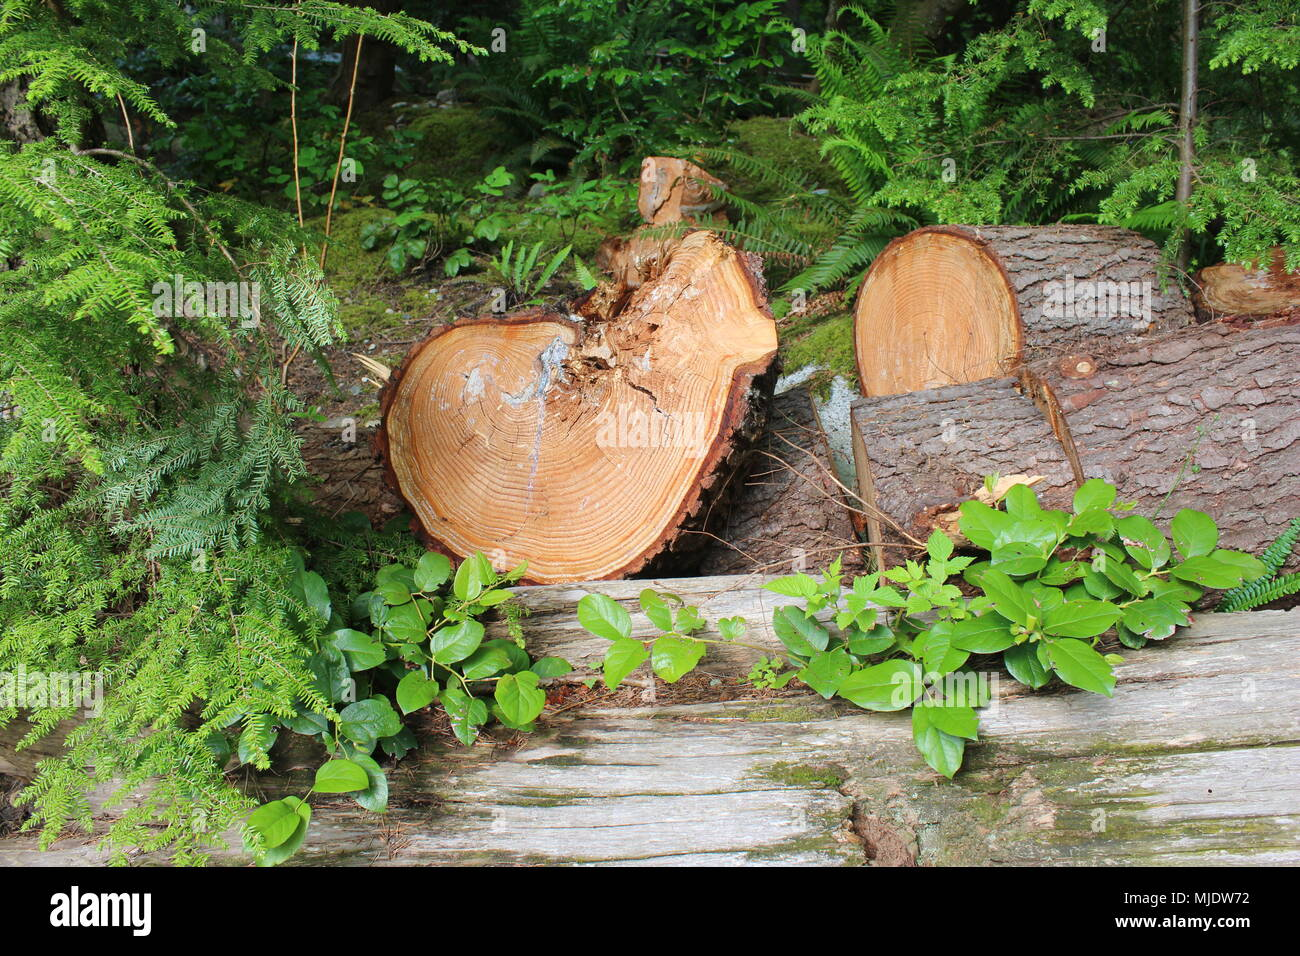 Tree trunk cut to show layers and its age. Capilano Park, Vancouver, BC, Canada. Stock Photo